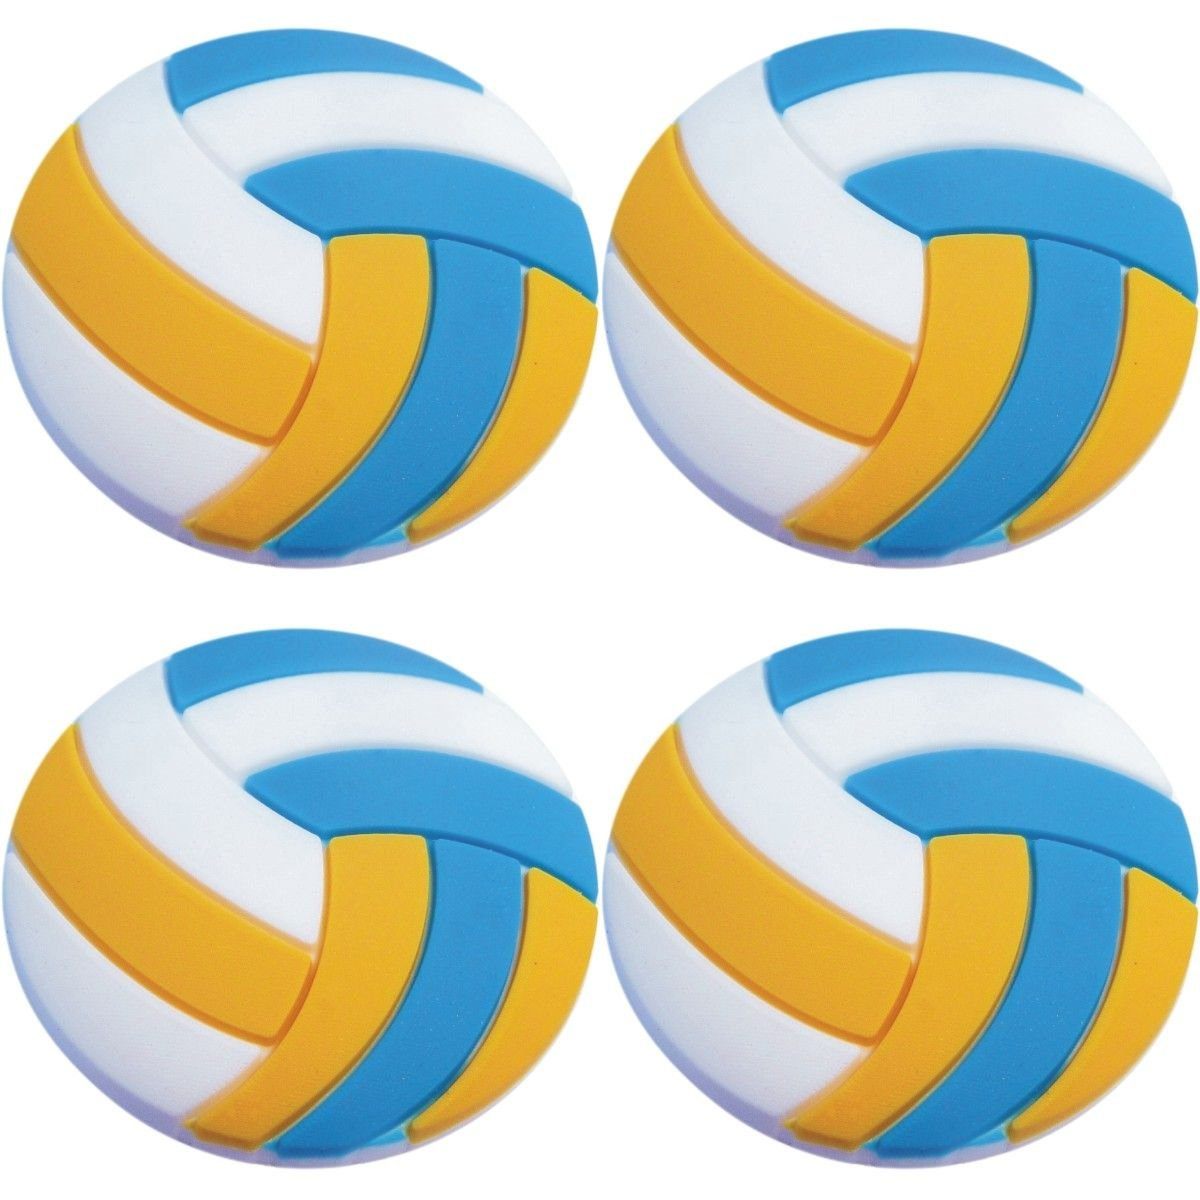 Four (4) of Volleyball Rubber Charms Jibbitz Croc Style